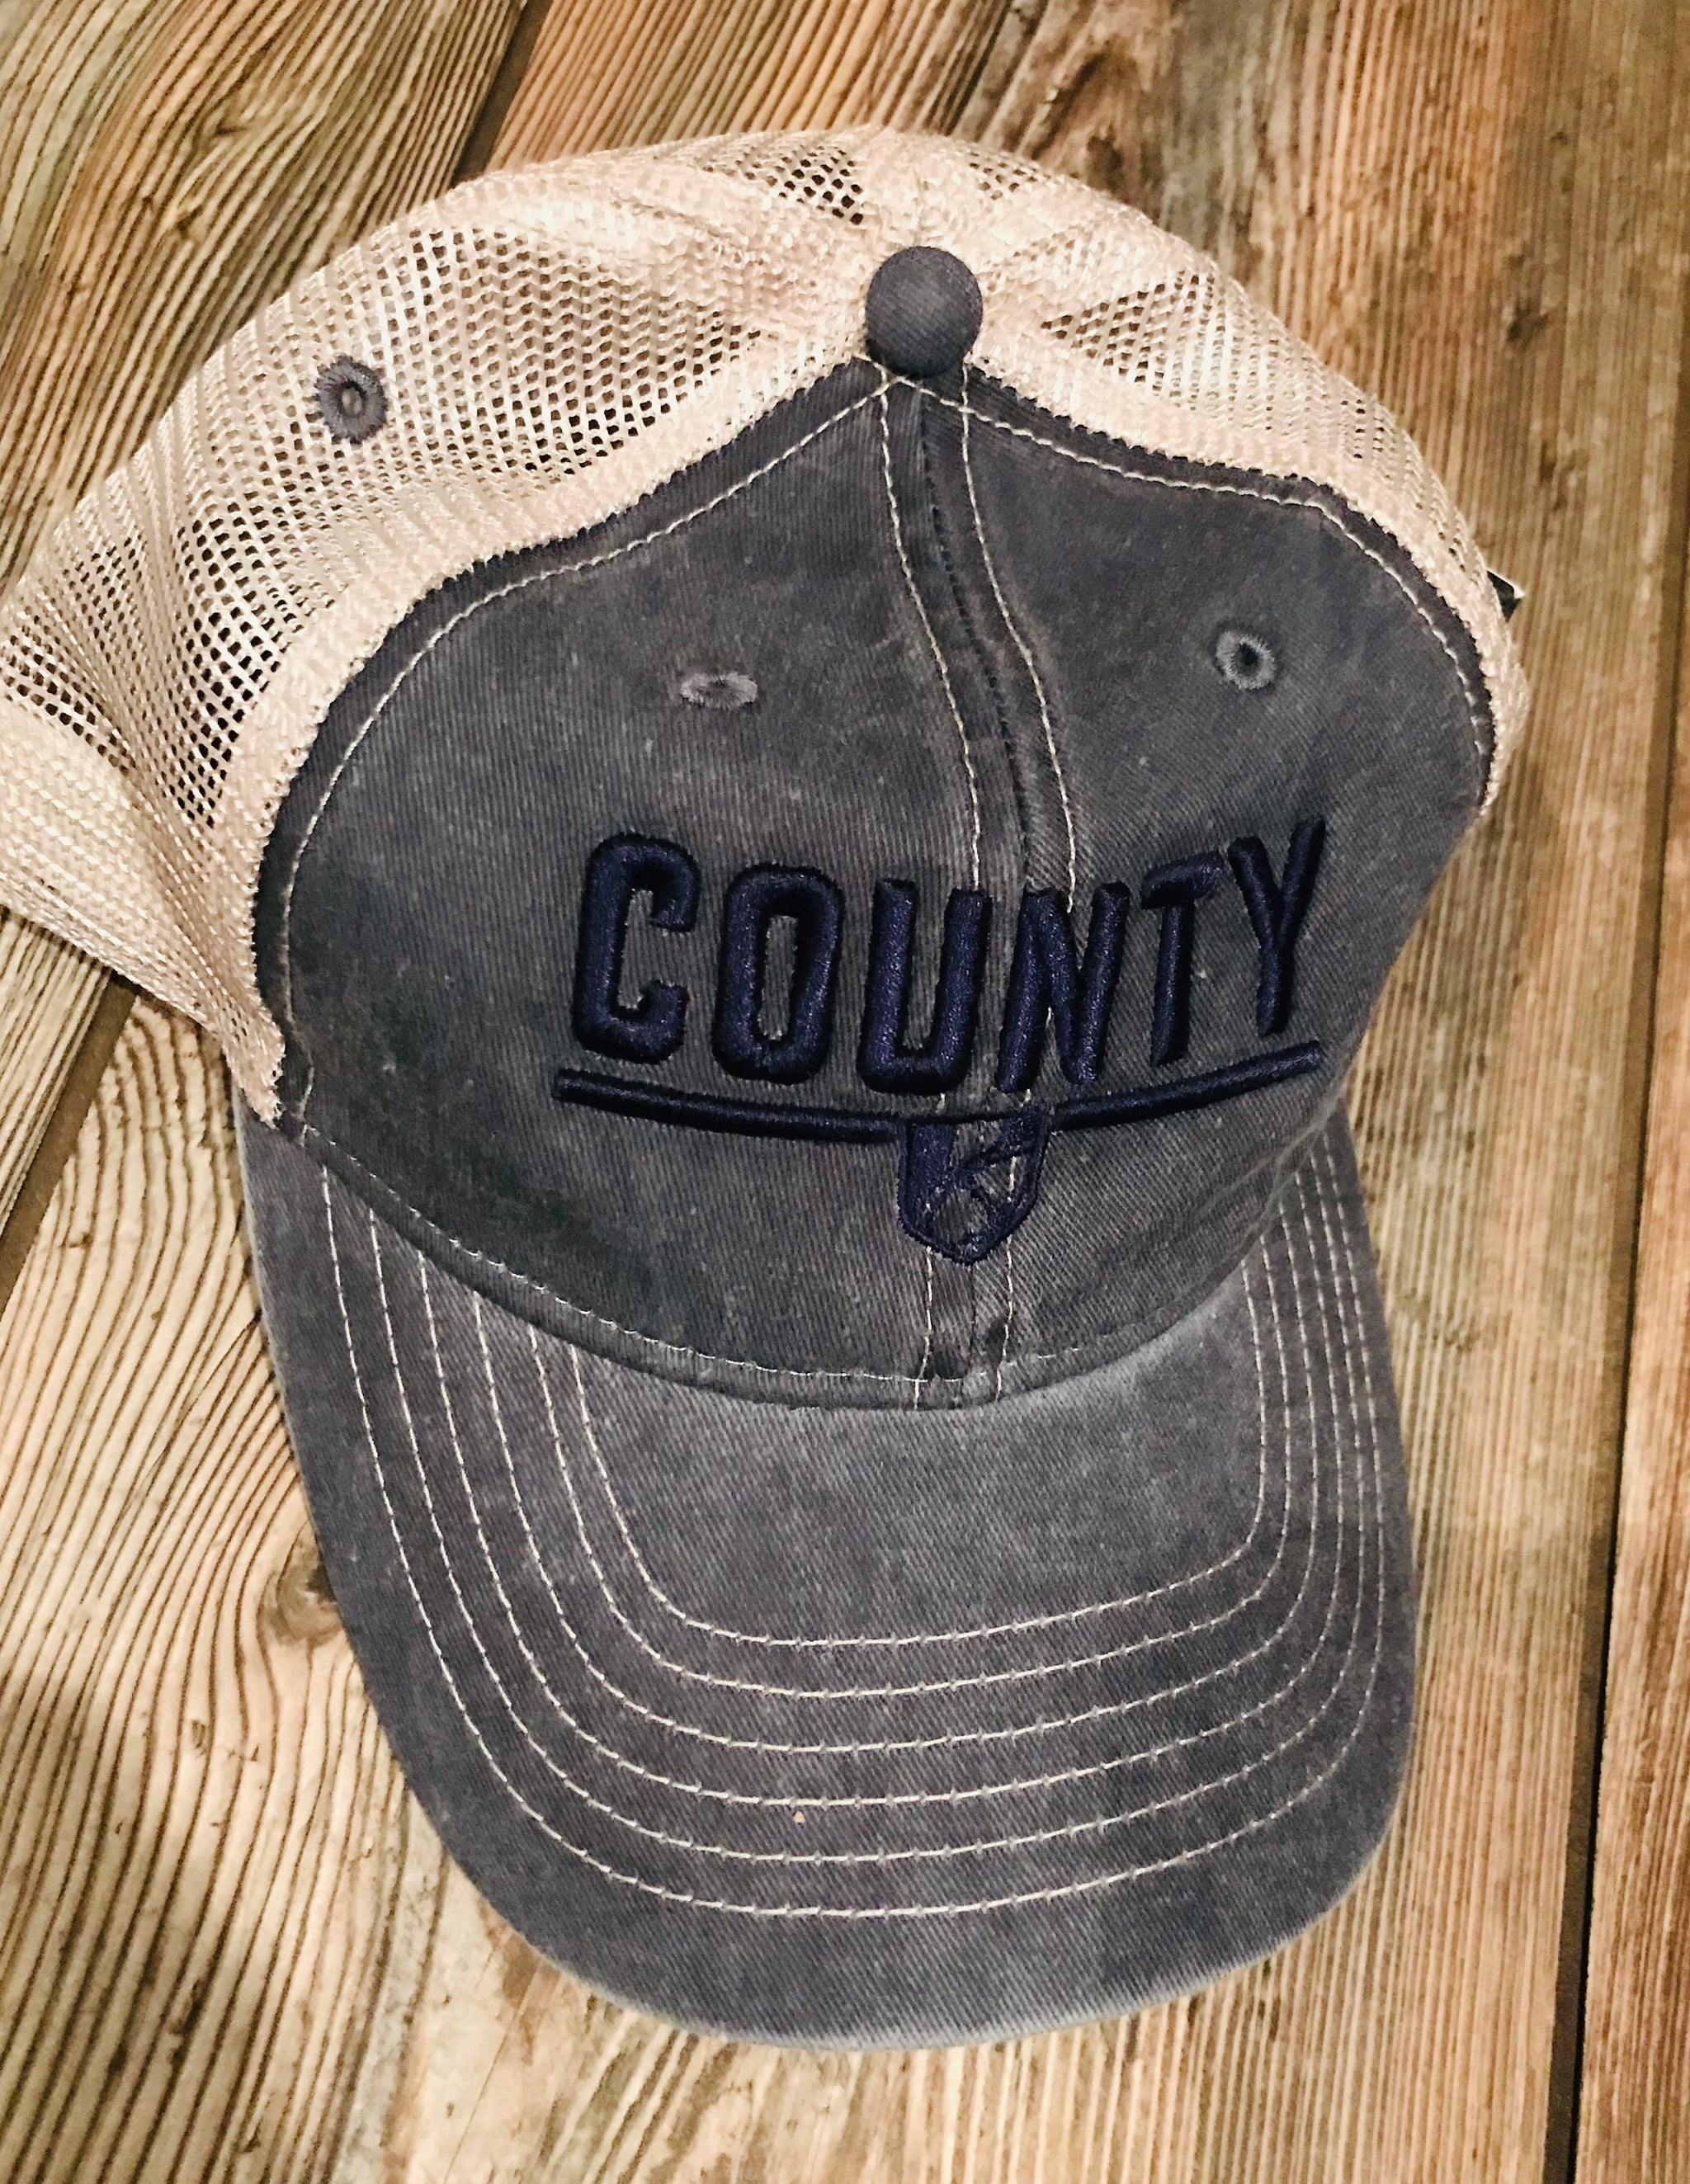 COUNTY Legend Women's Cap